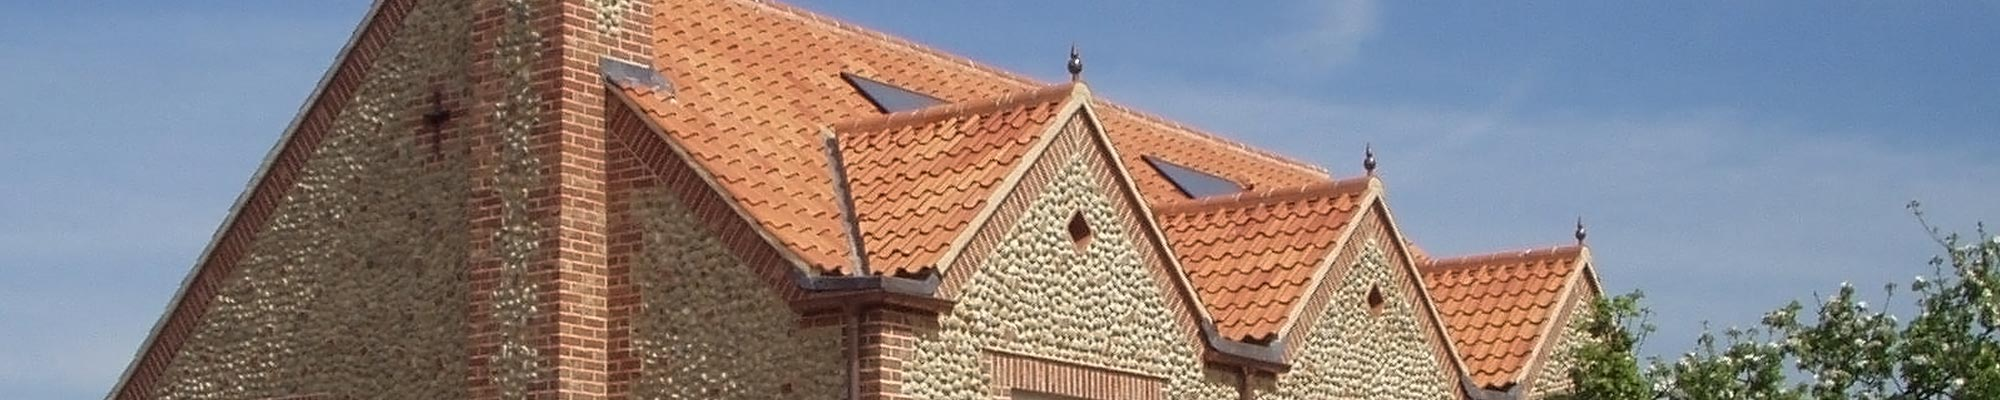 Domestic tile and slate roofing services in Norfolk from proctor Roofing